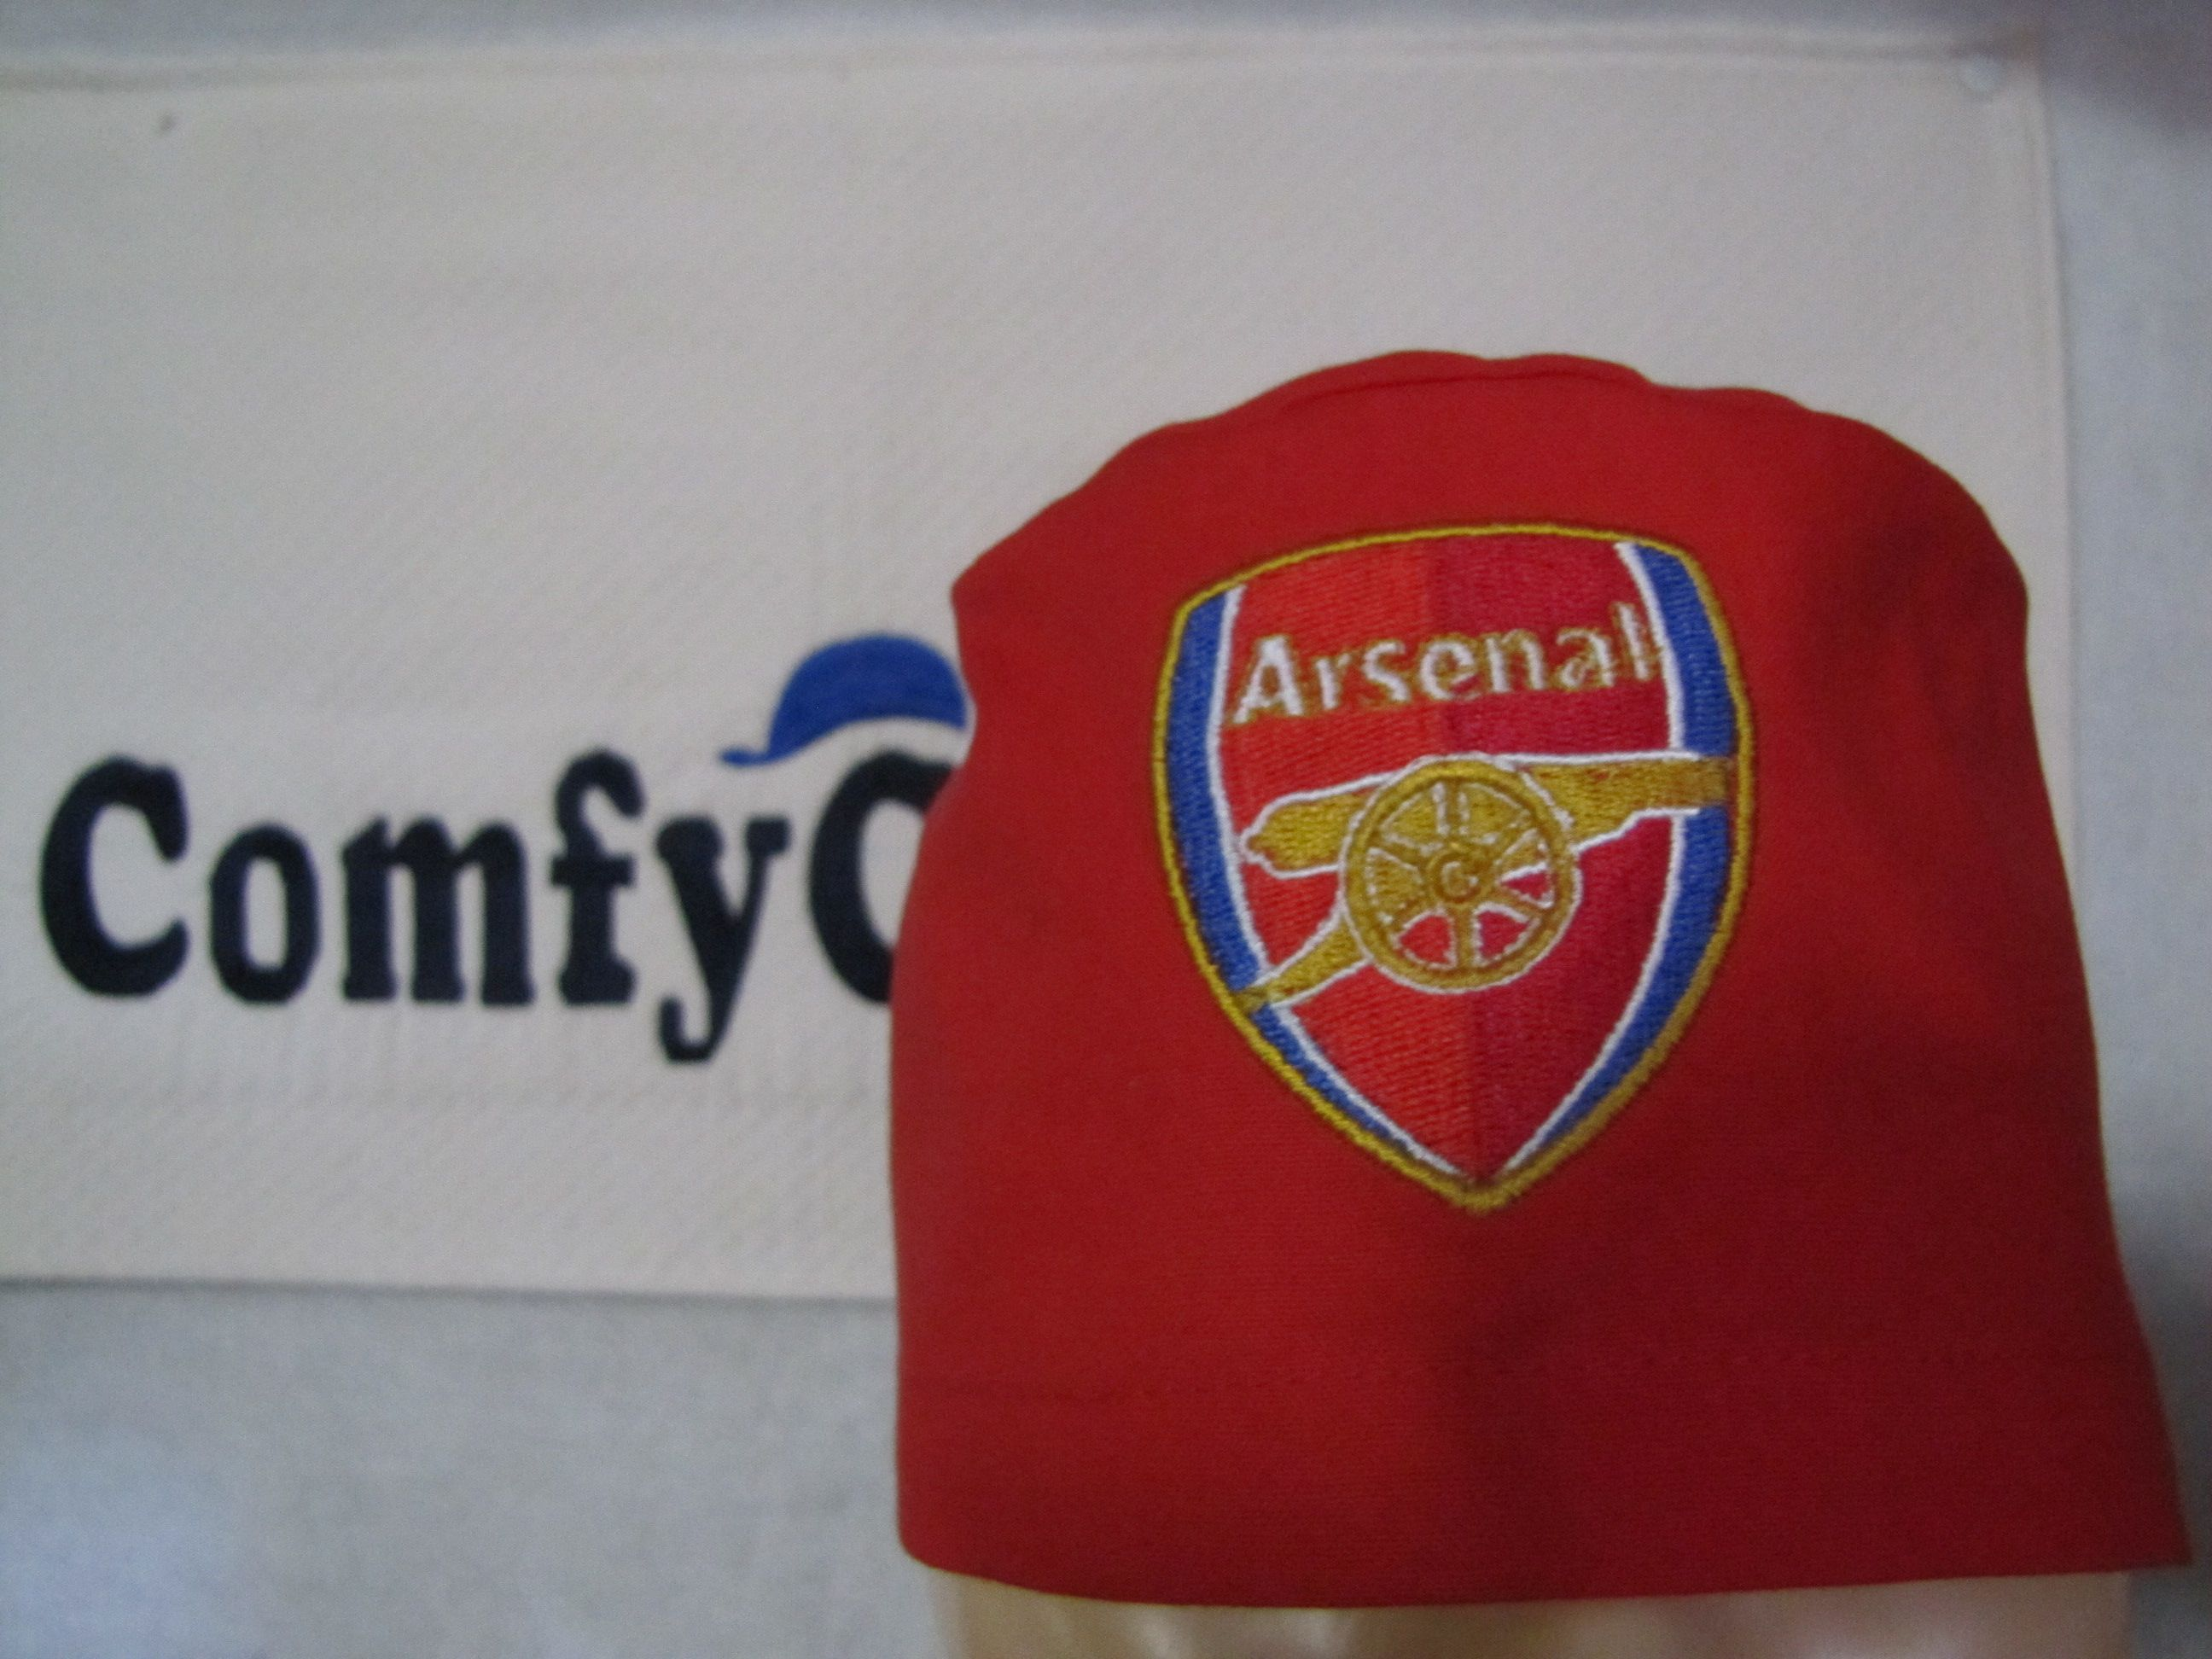 Arsenal crest embroidered on a red male scrub cap.